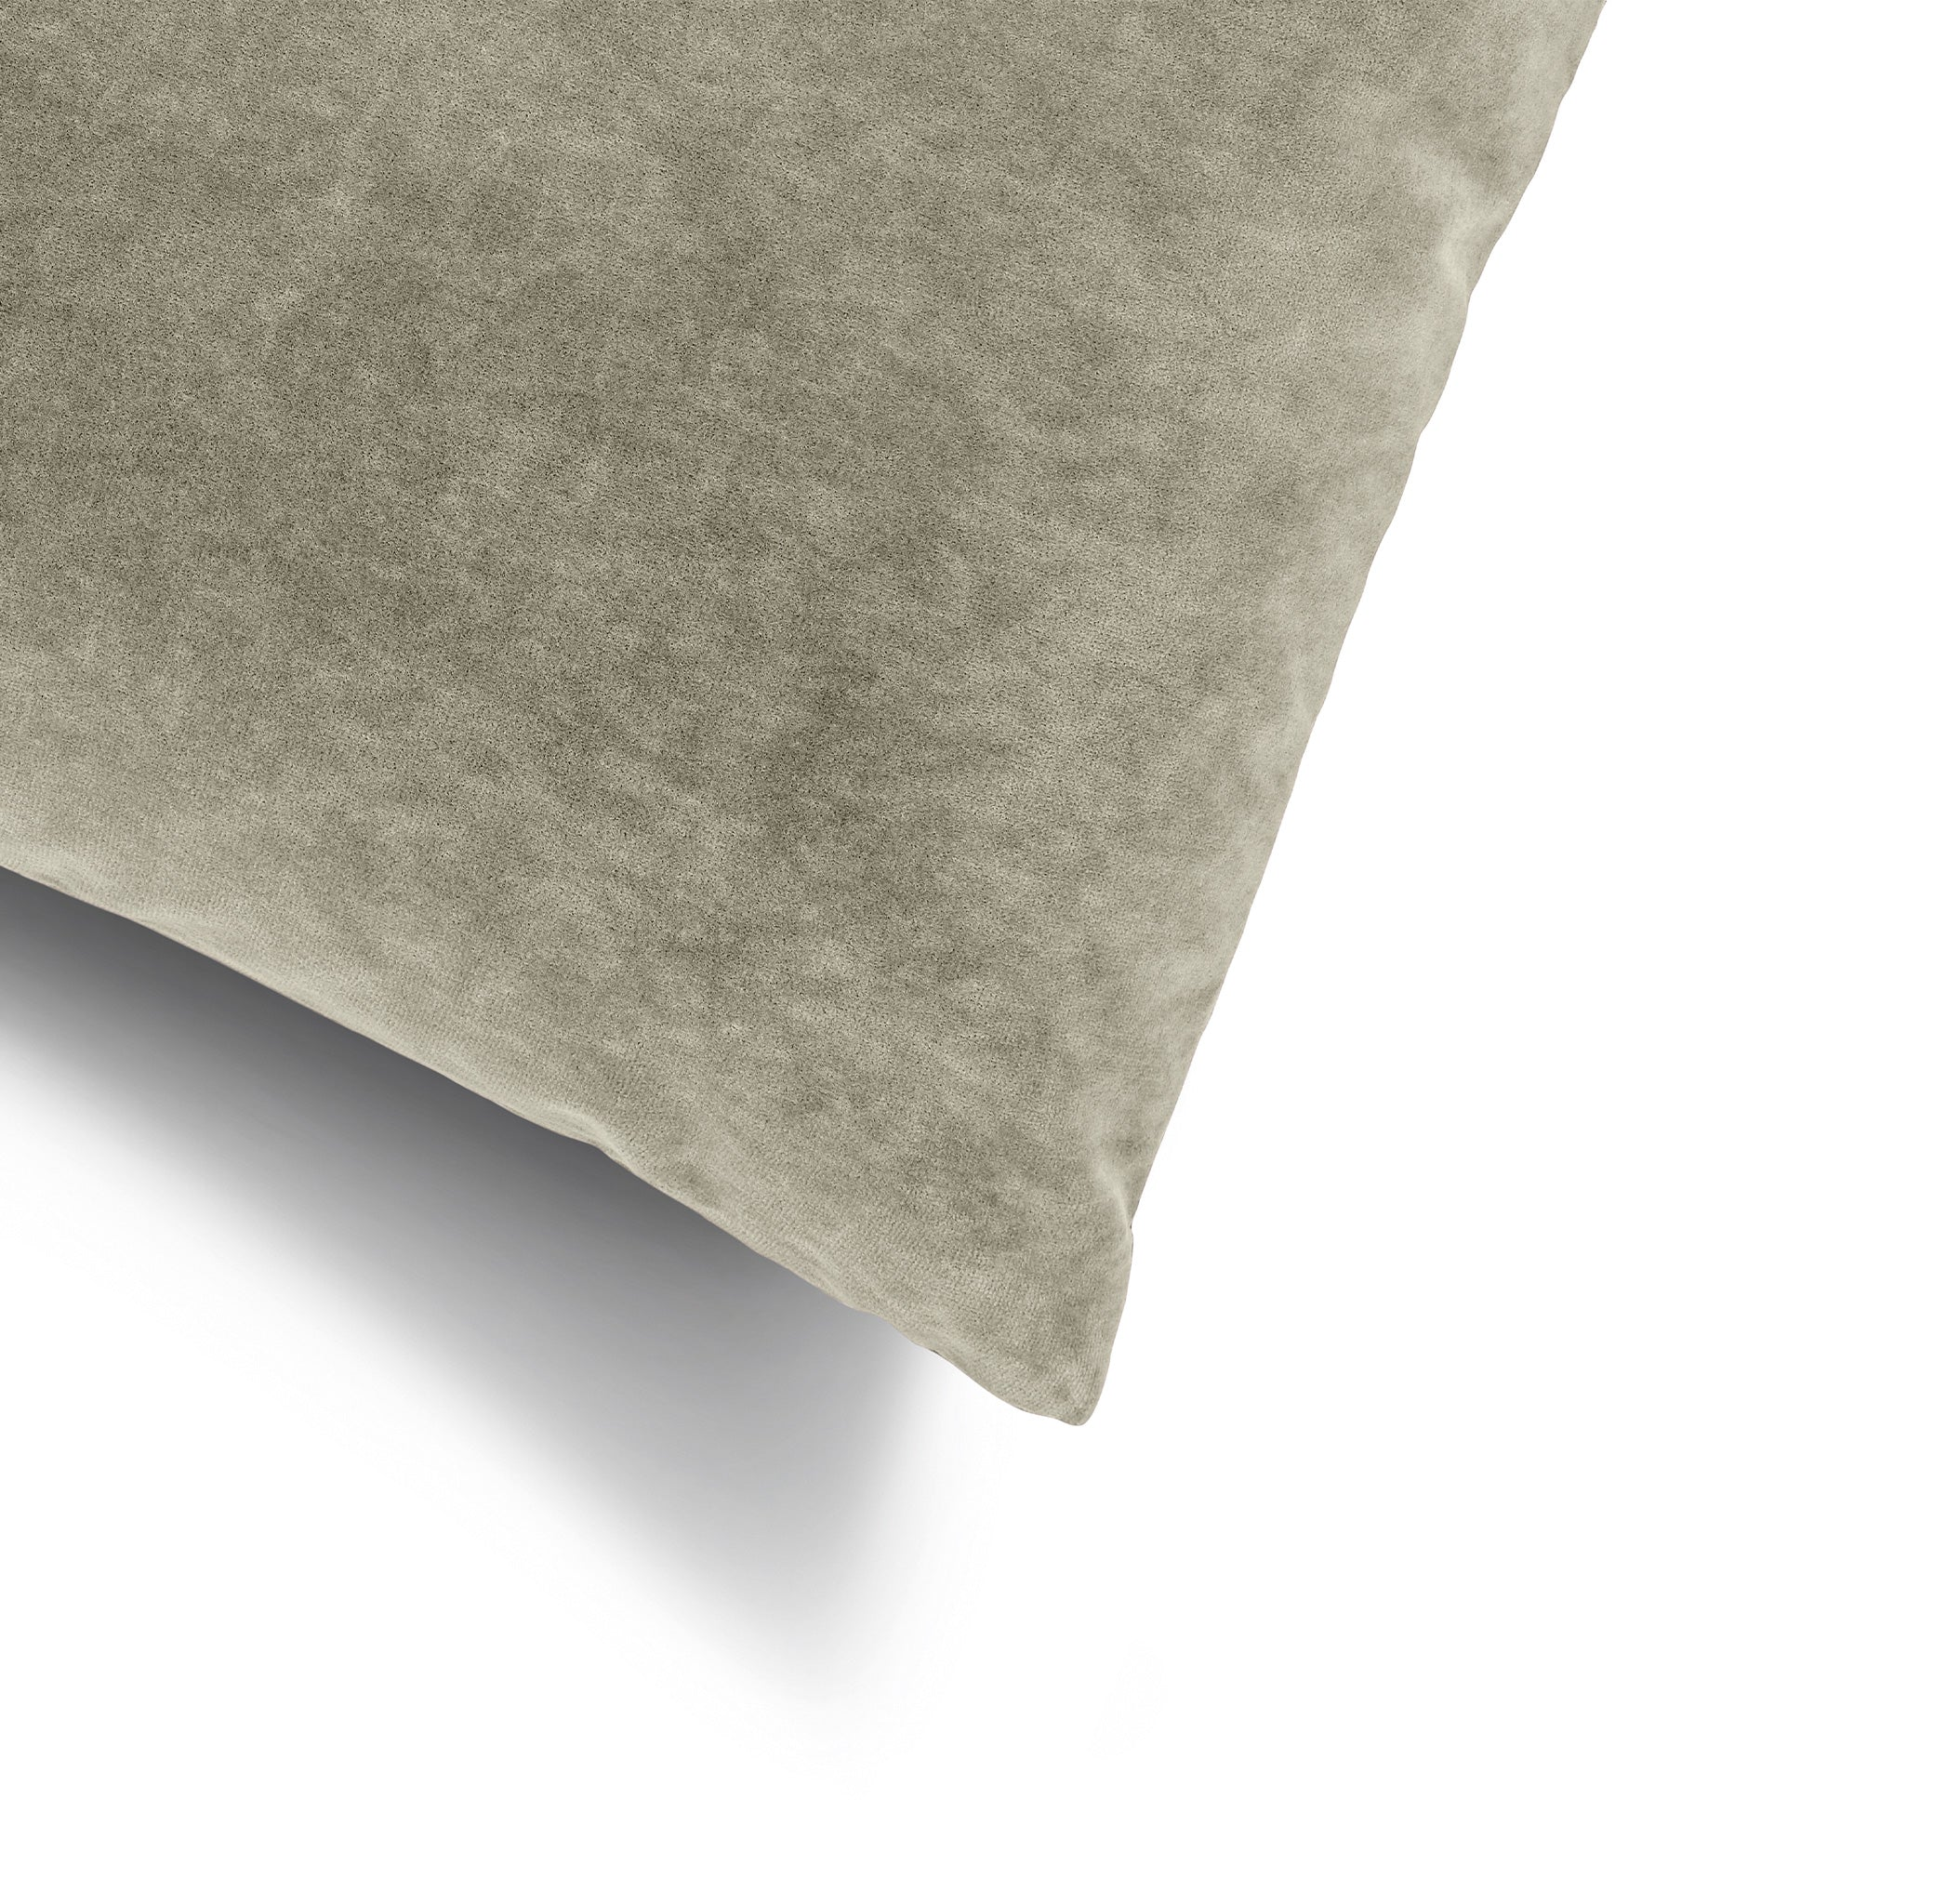 Rectangular Decorative Cushion